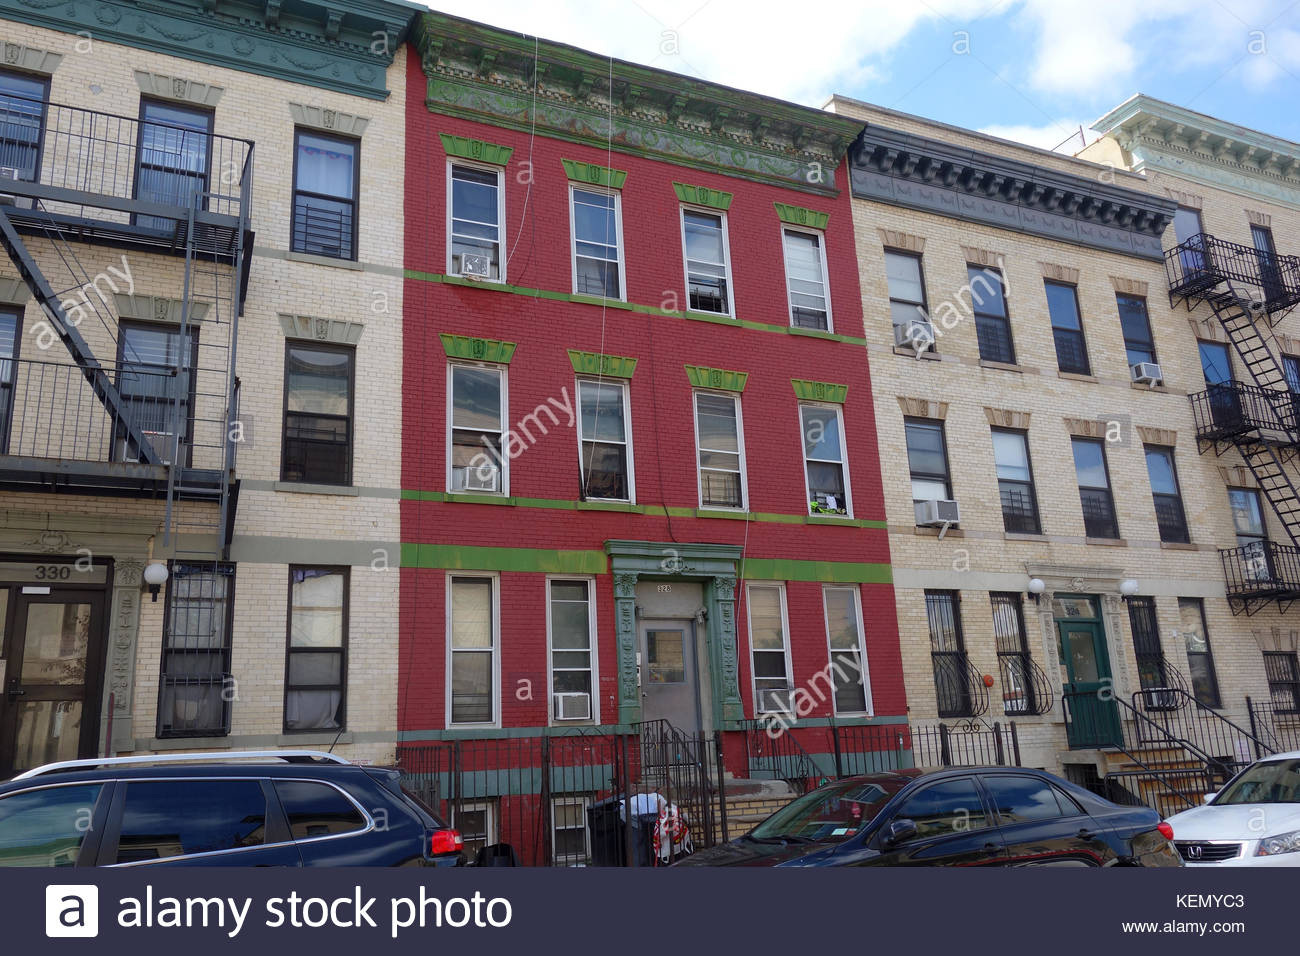 Jackie Gleason Childhood Home in Bushwick, Brooklyn, New York on Which He Modeled the Stage Set of 'The Honeymooners' - Stock Image